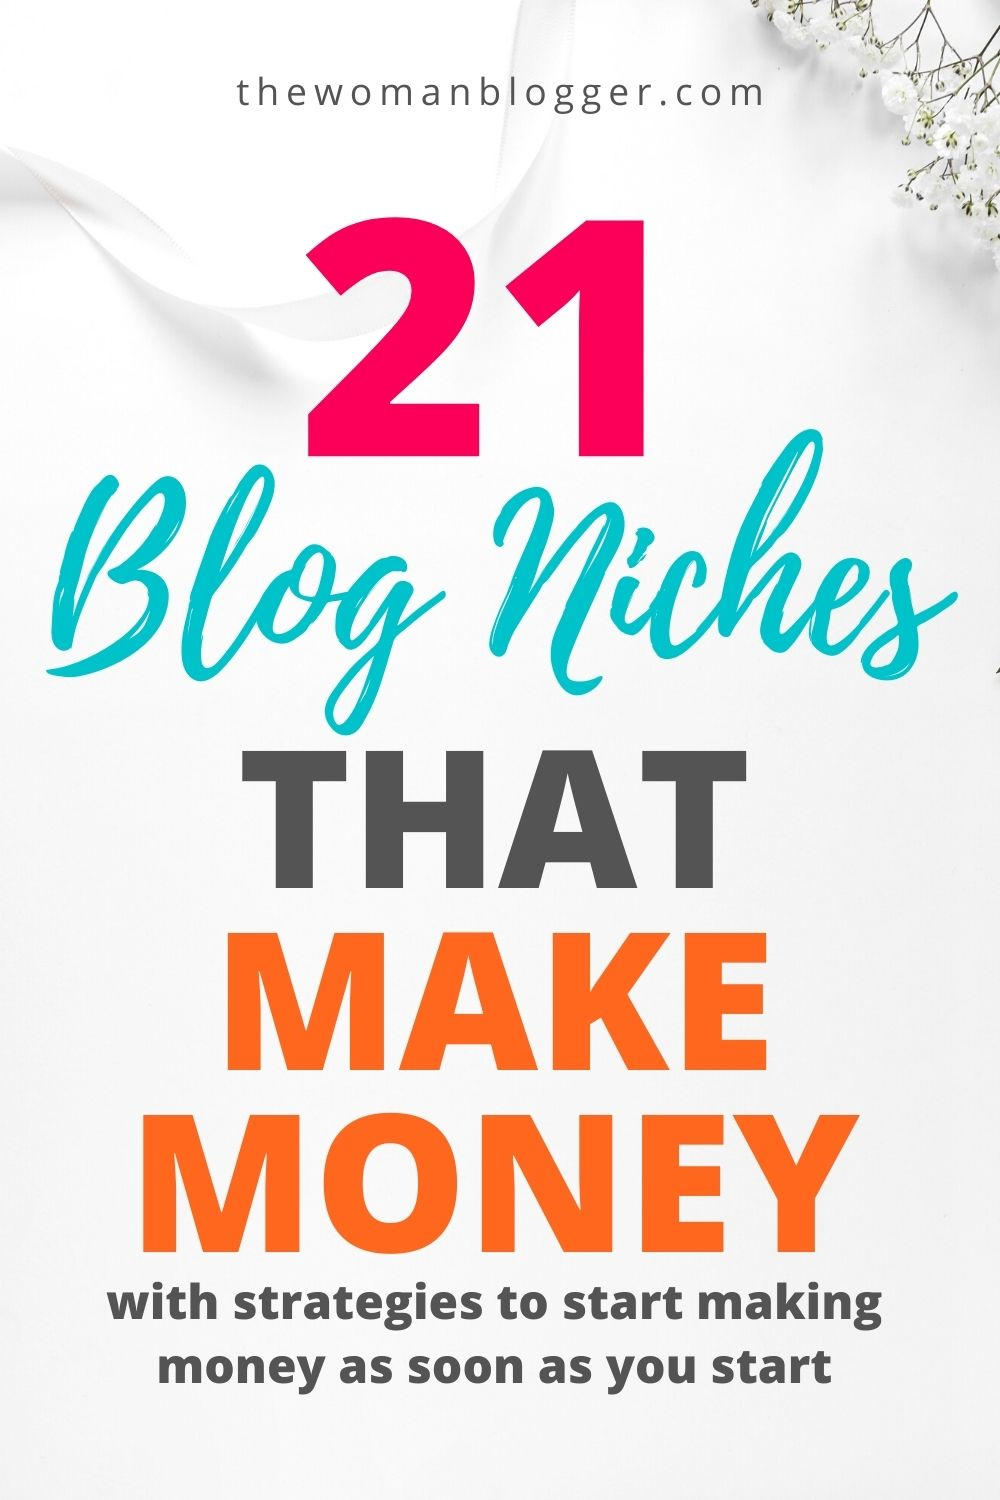 21 Blogging Niches to Make Money in 2021